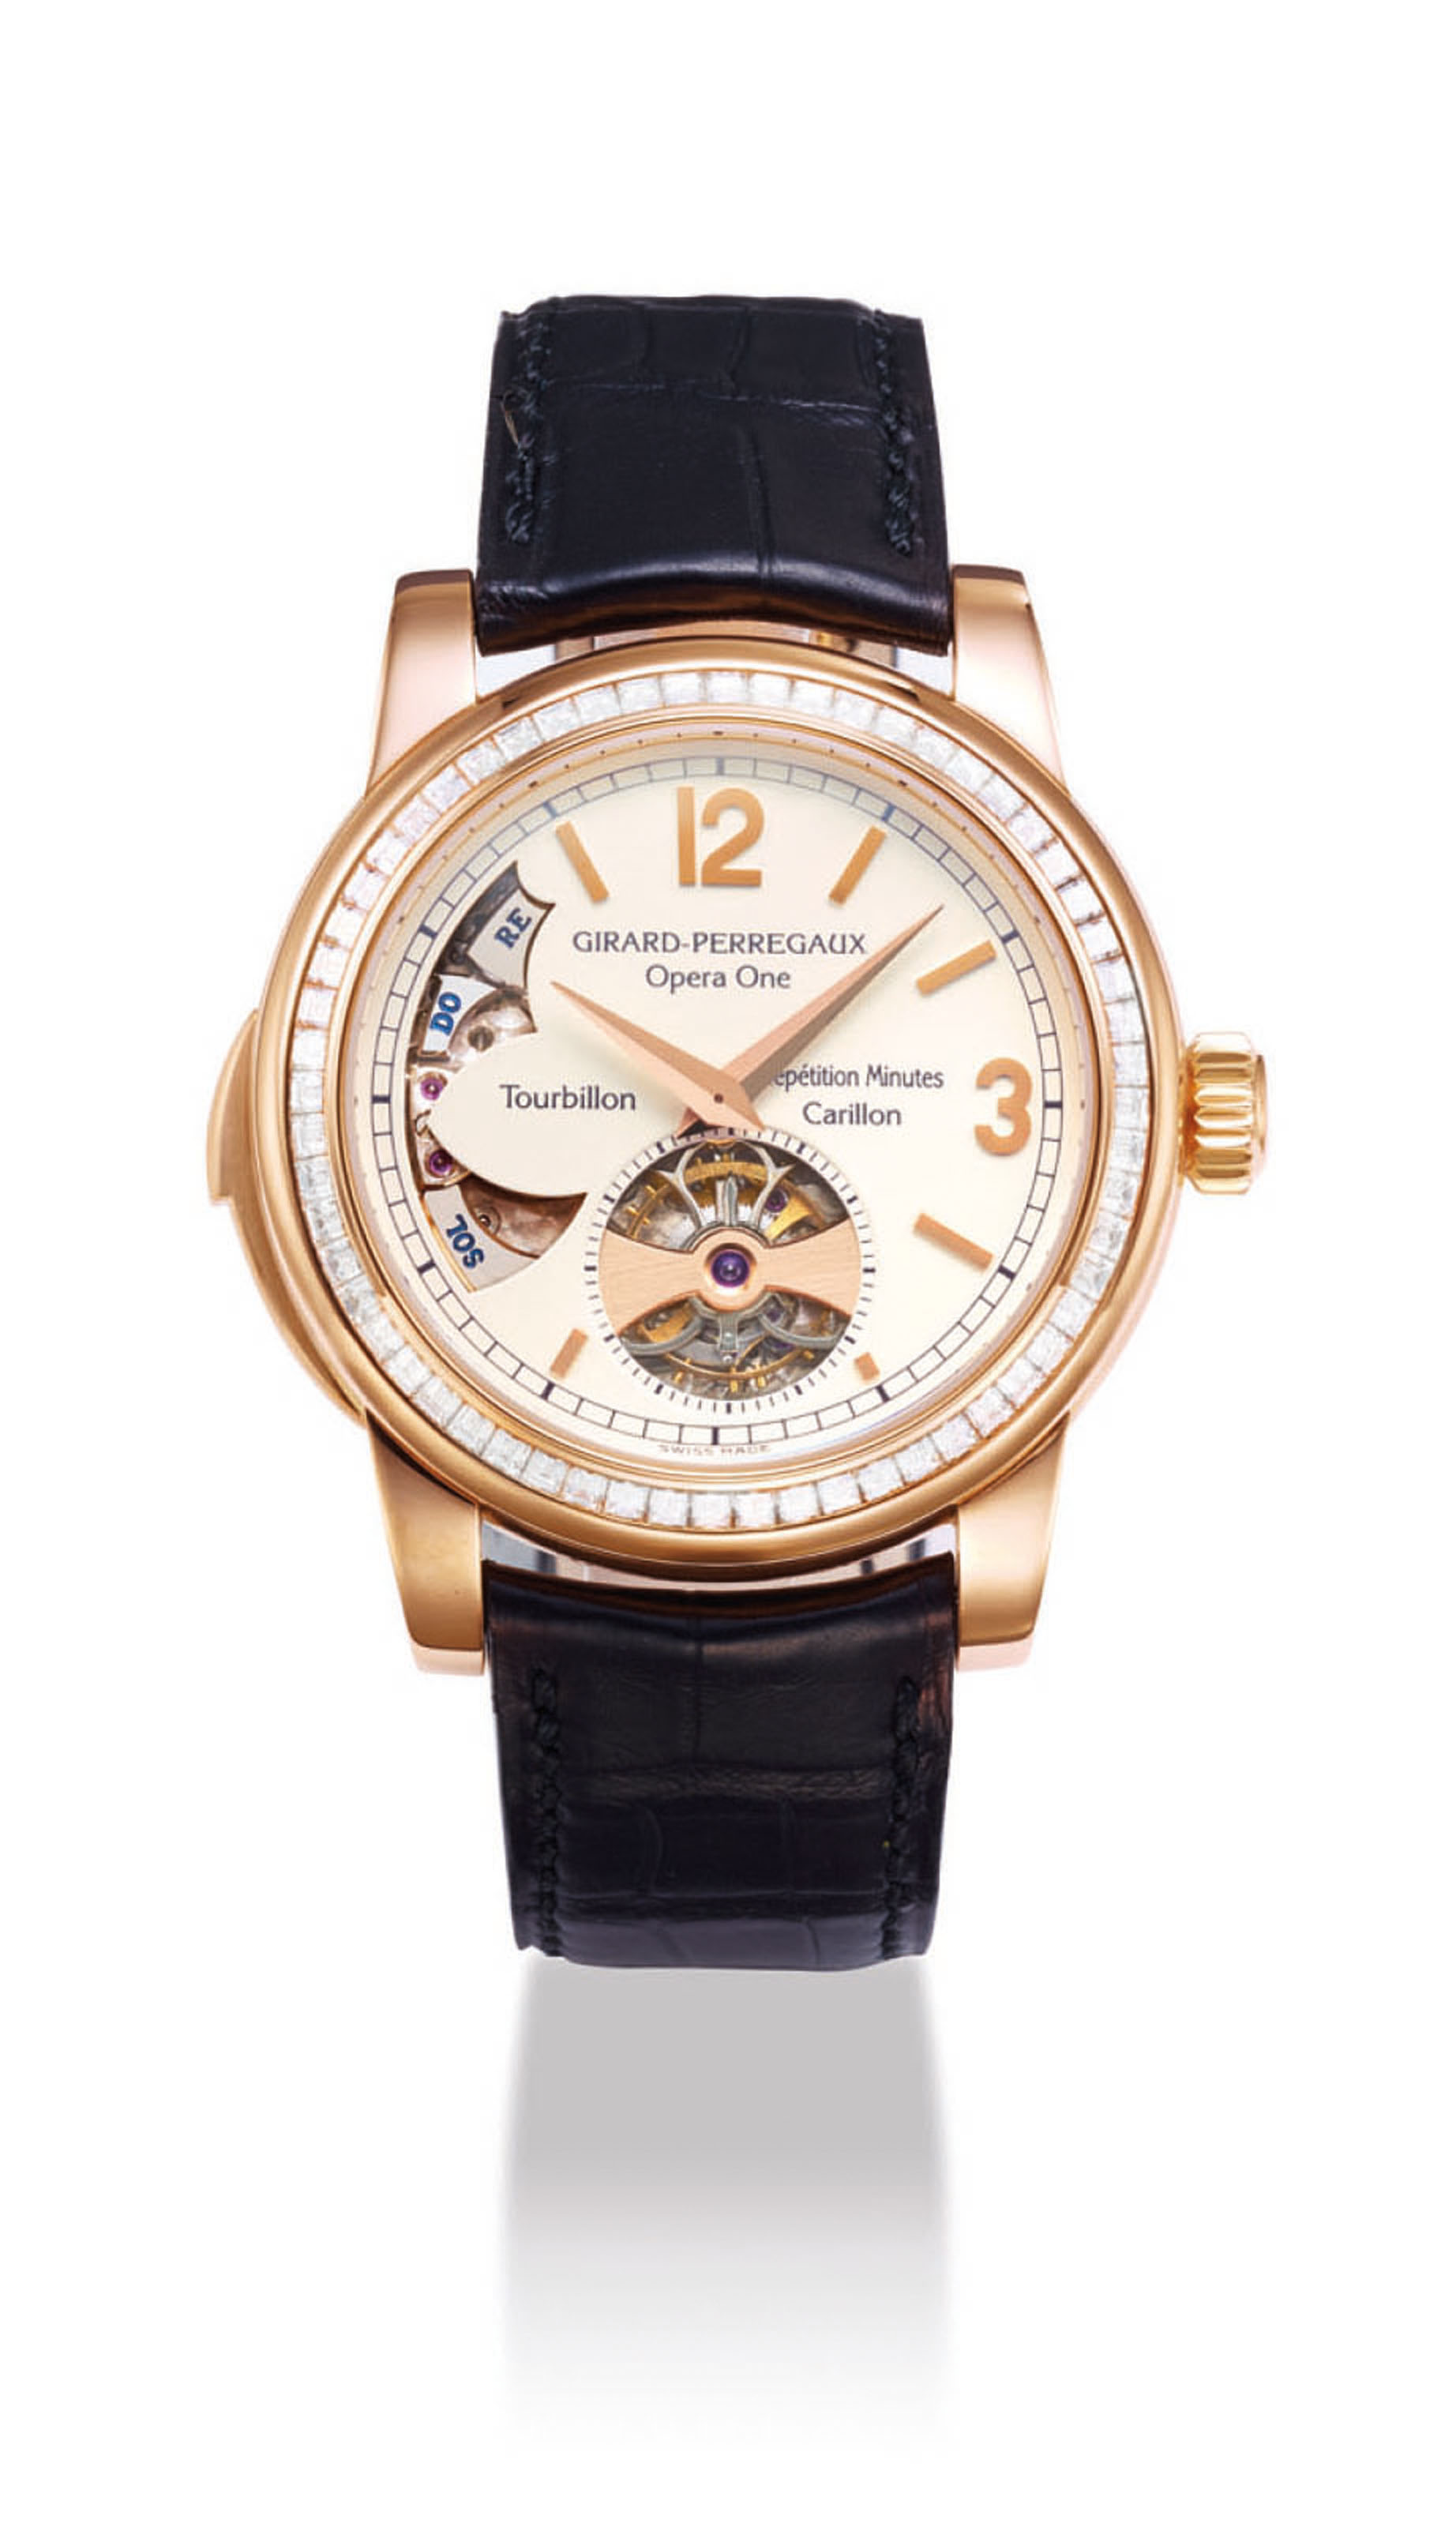 GIRARD-PERREGAUX. AN IMPORTANT AND VERY FINE 18K PINK GOLD AND DIAMOND-SET MINUTE REPEATING TOURBILLON WRISTWATCH WITH WESTMINSTER CARILLON CHIME